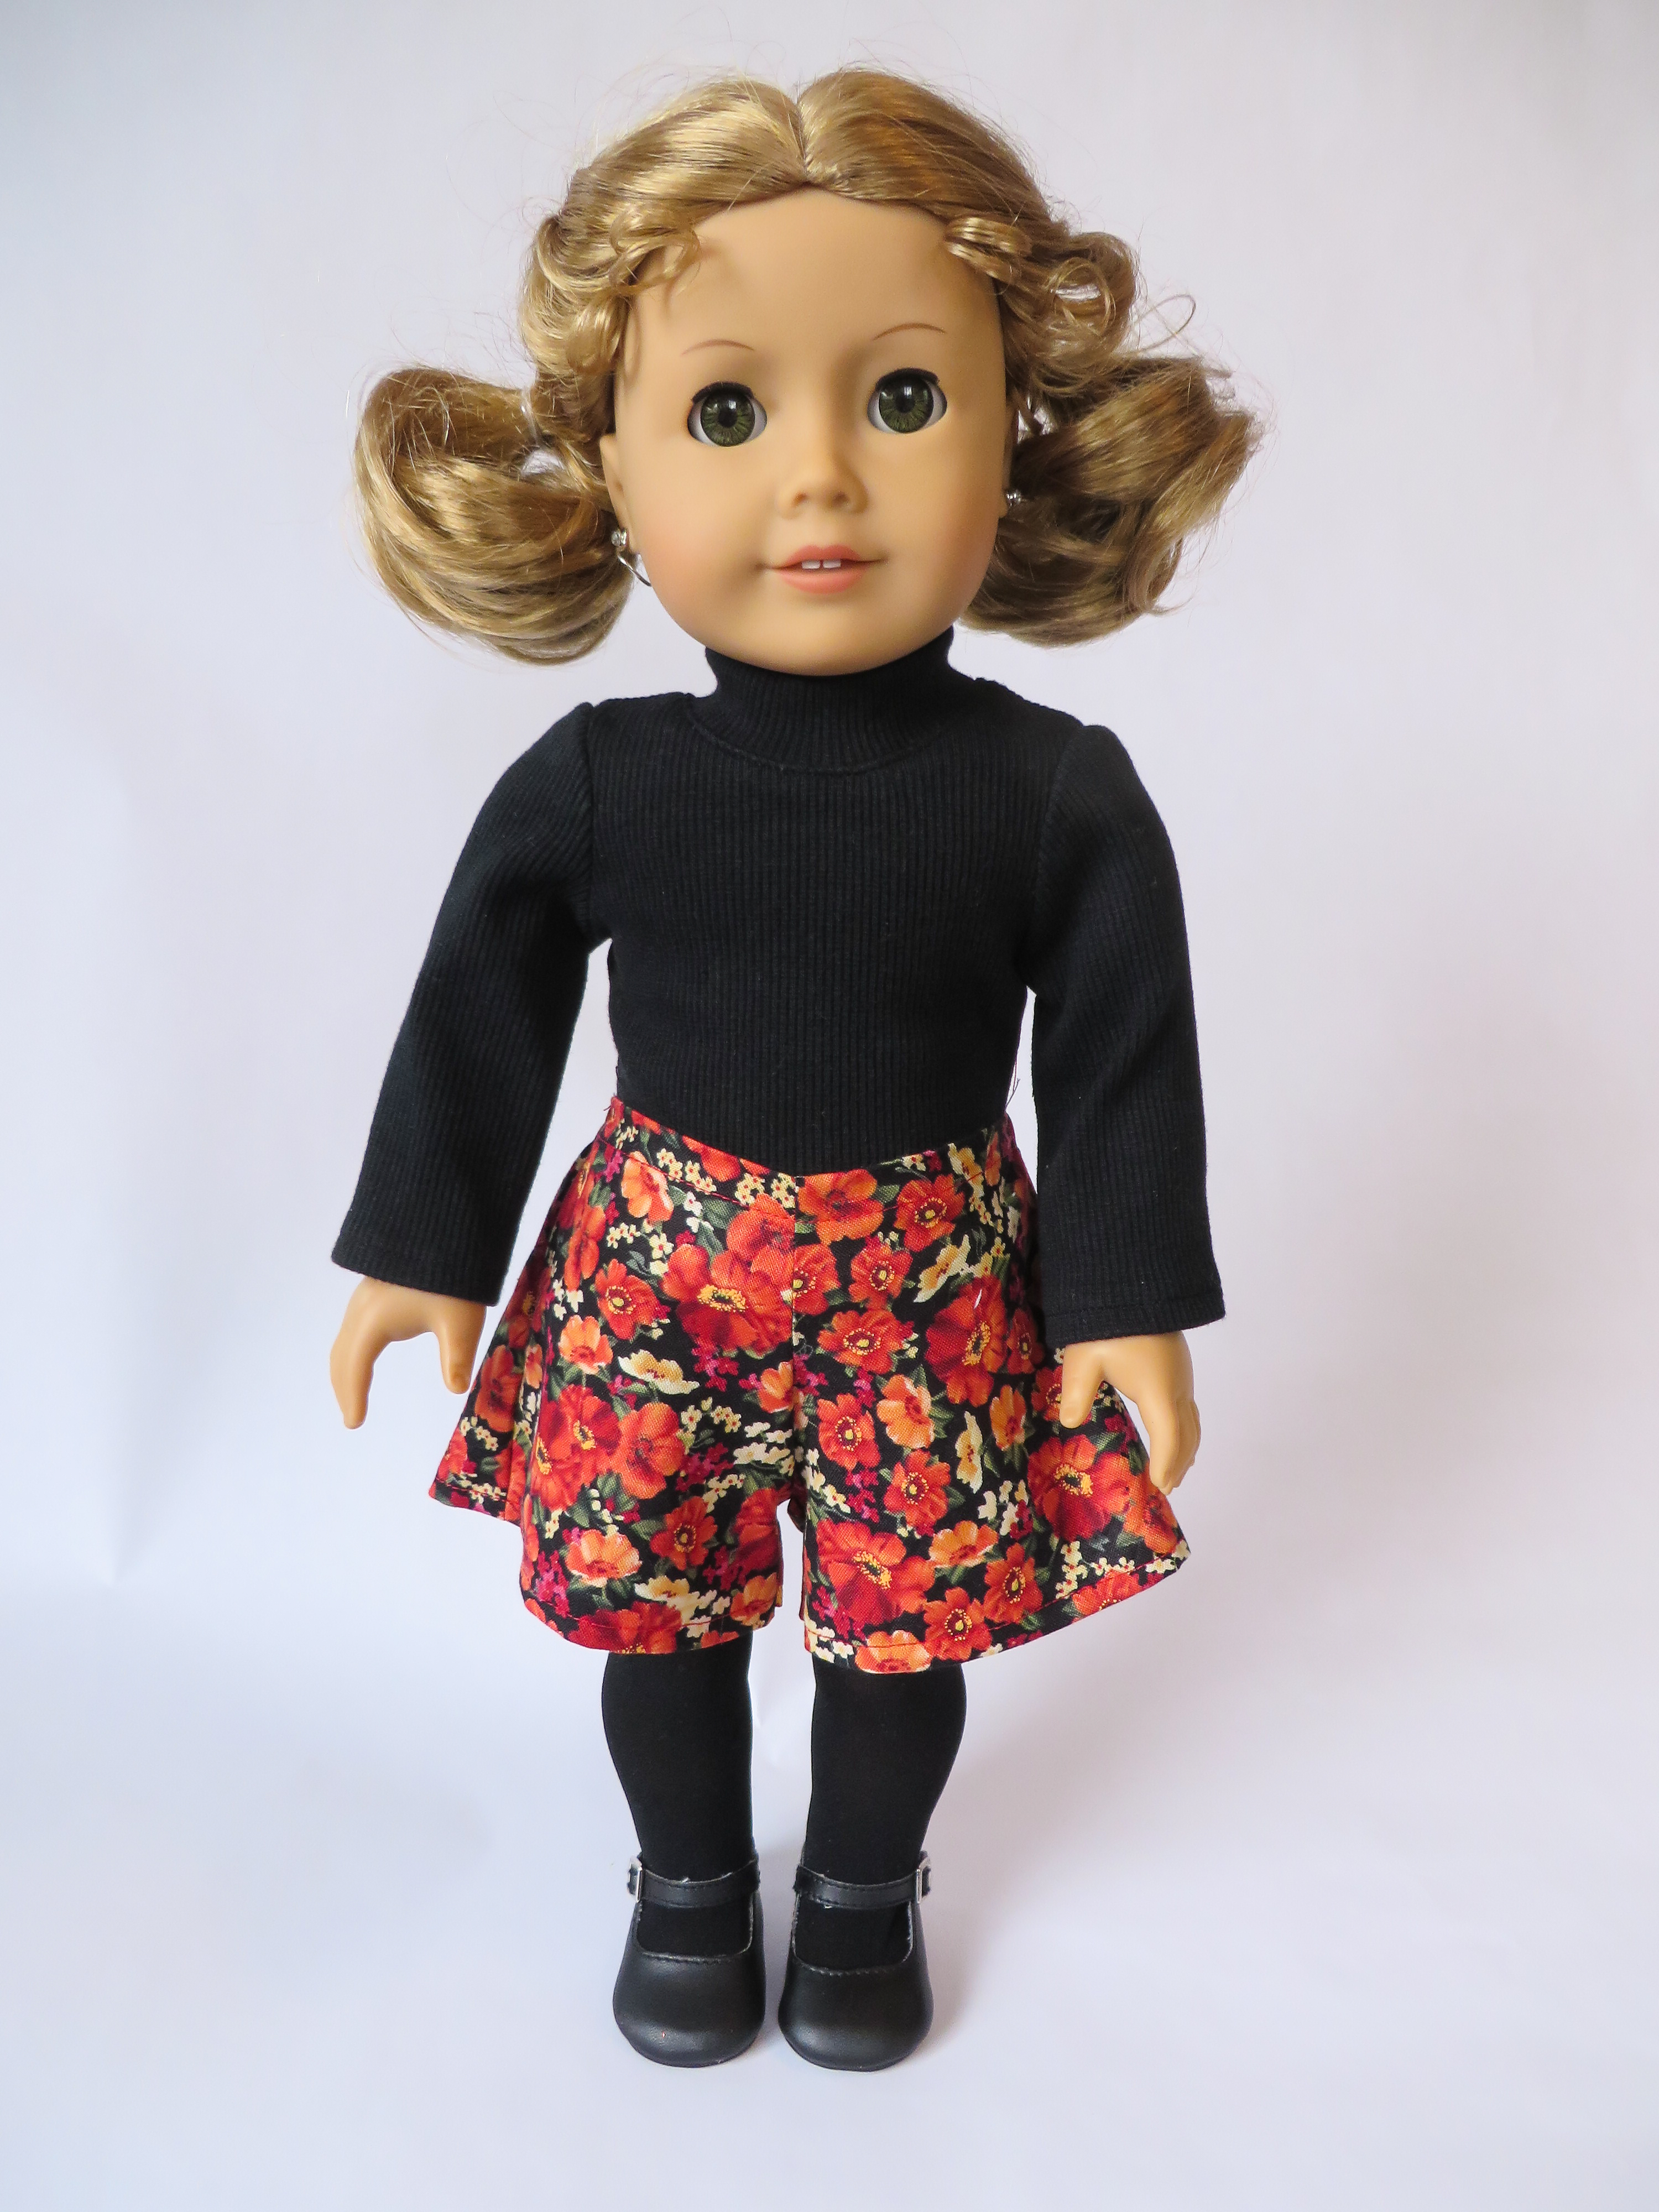 Easy sewing patterns for 18 inch dolls like American Girl. Sew a fall outfit for dolls with easy pdf digital sewing patterns from oh sew kat